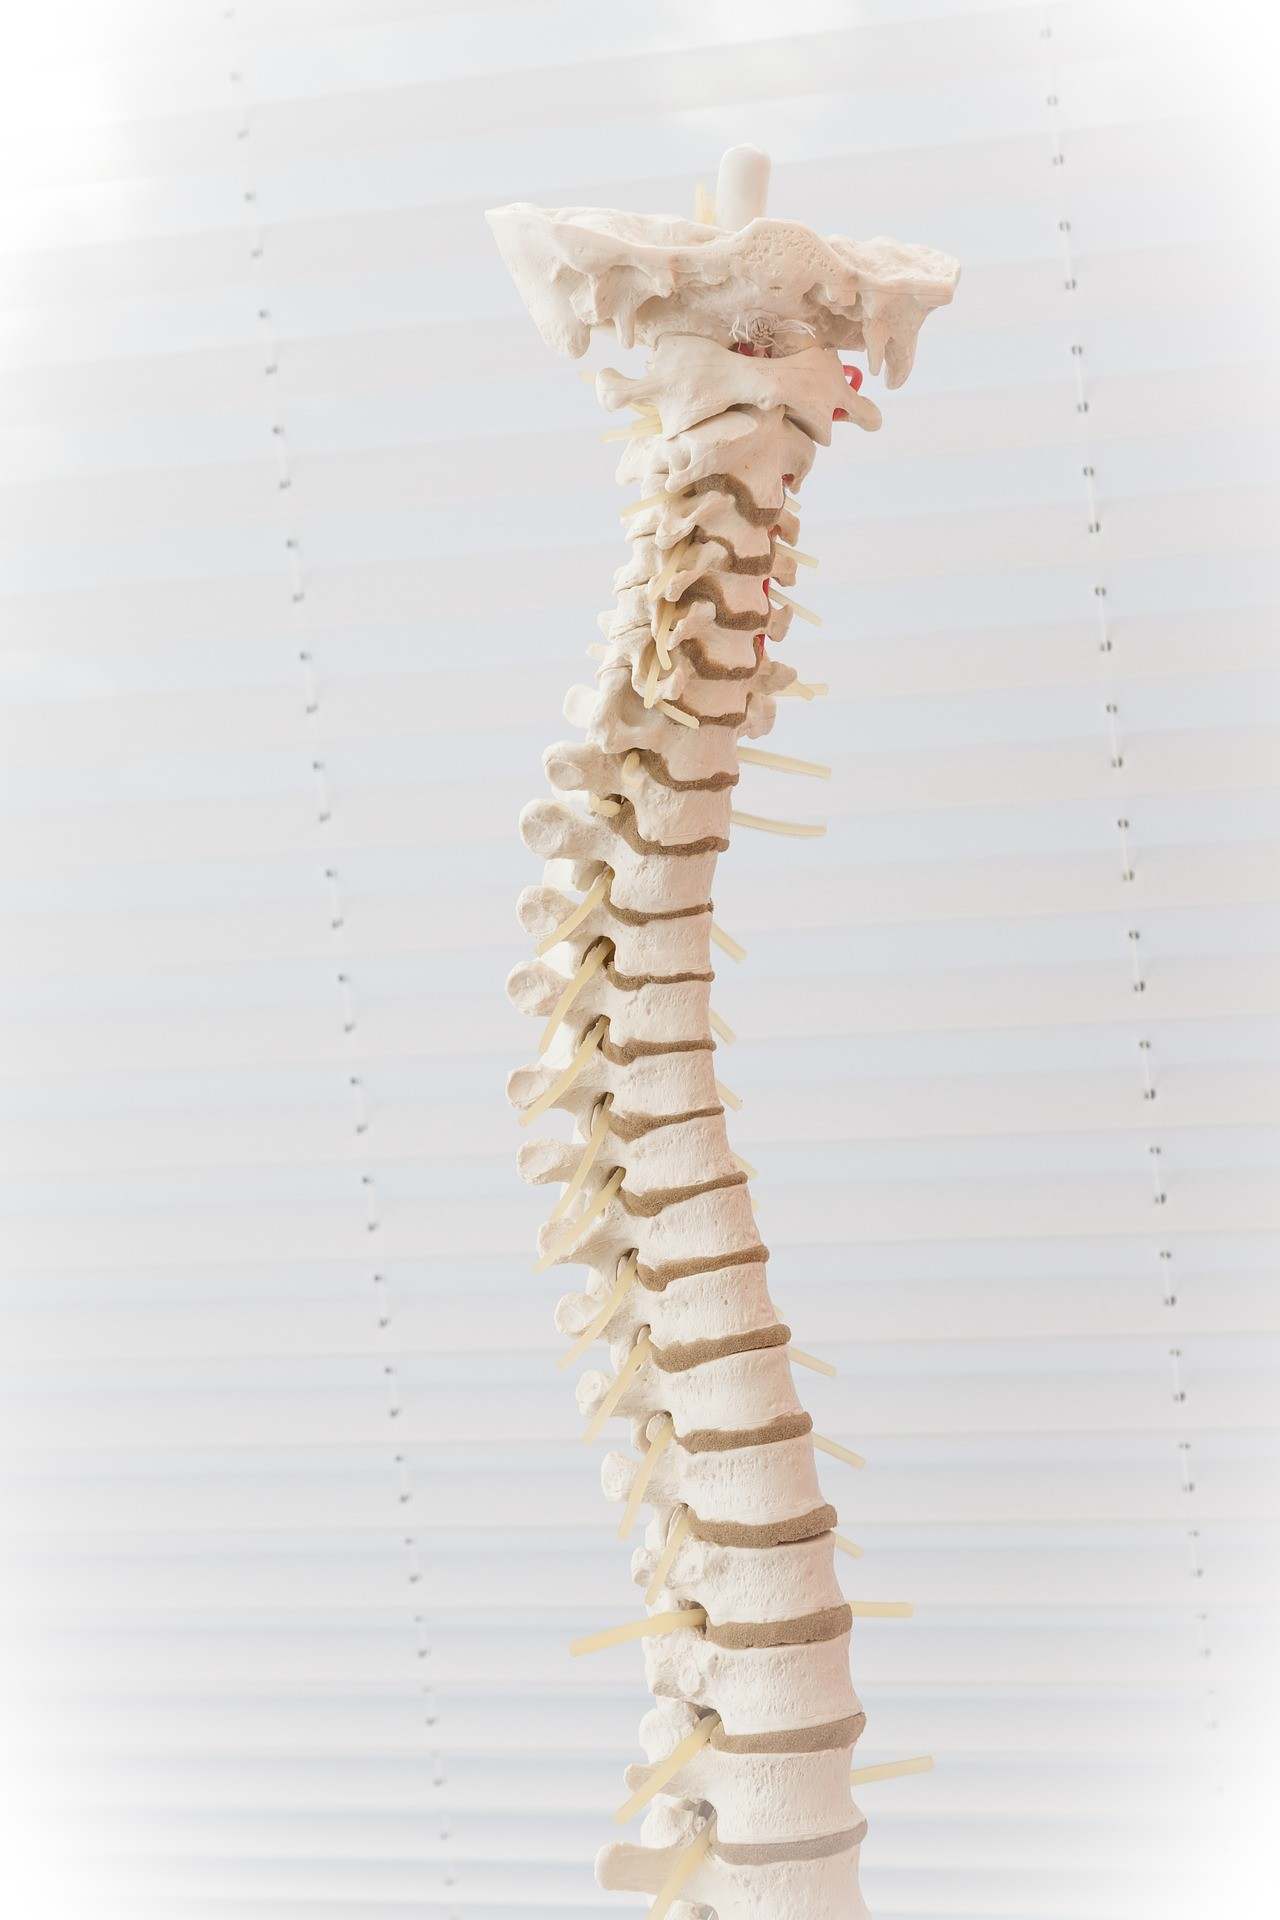 Spinal Column Alignment Treatment